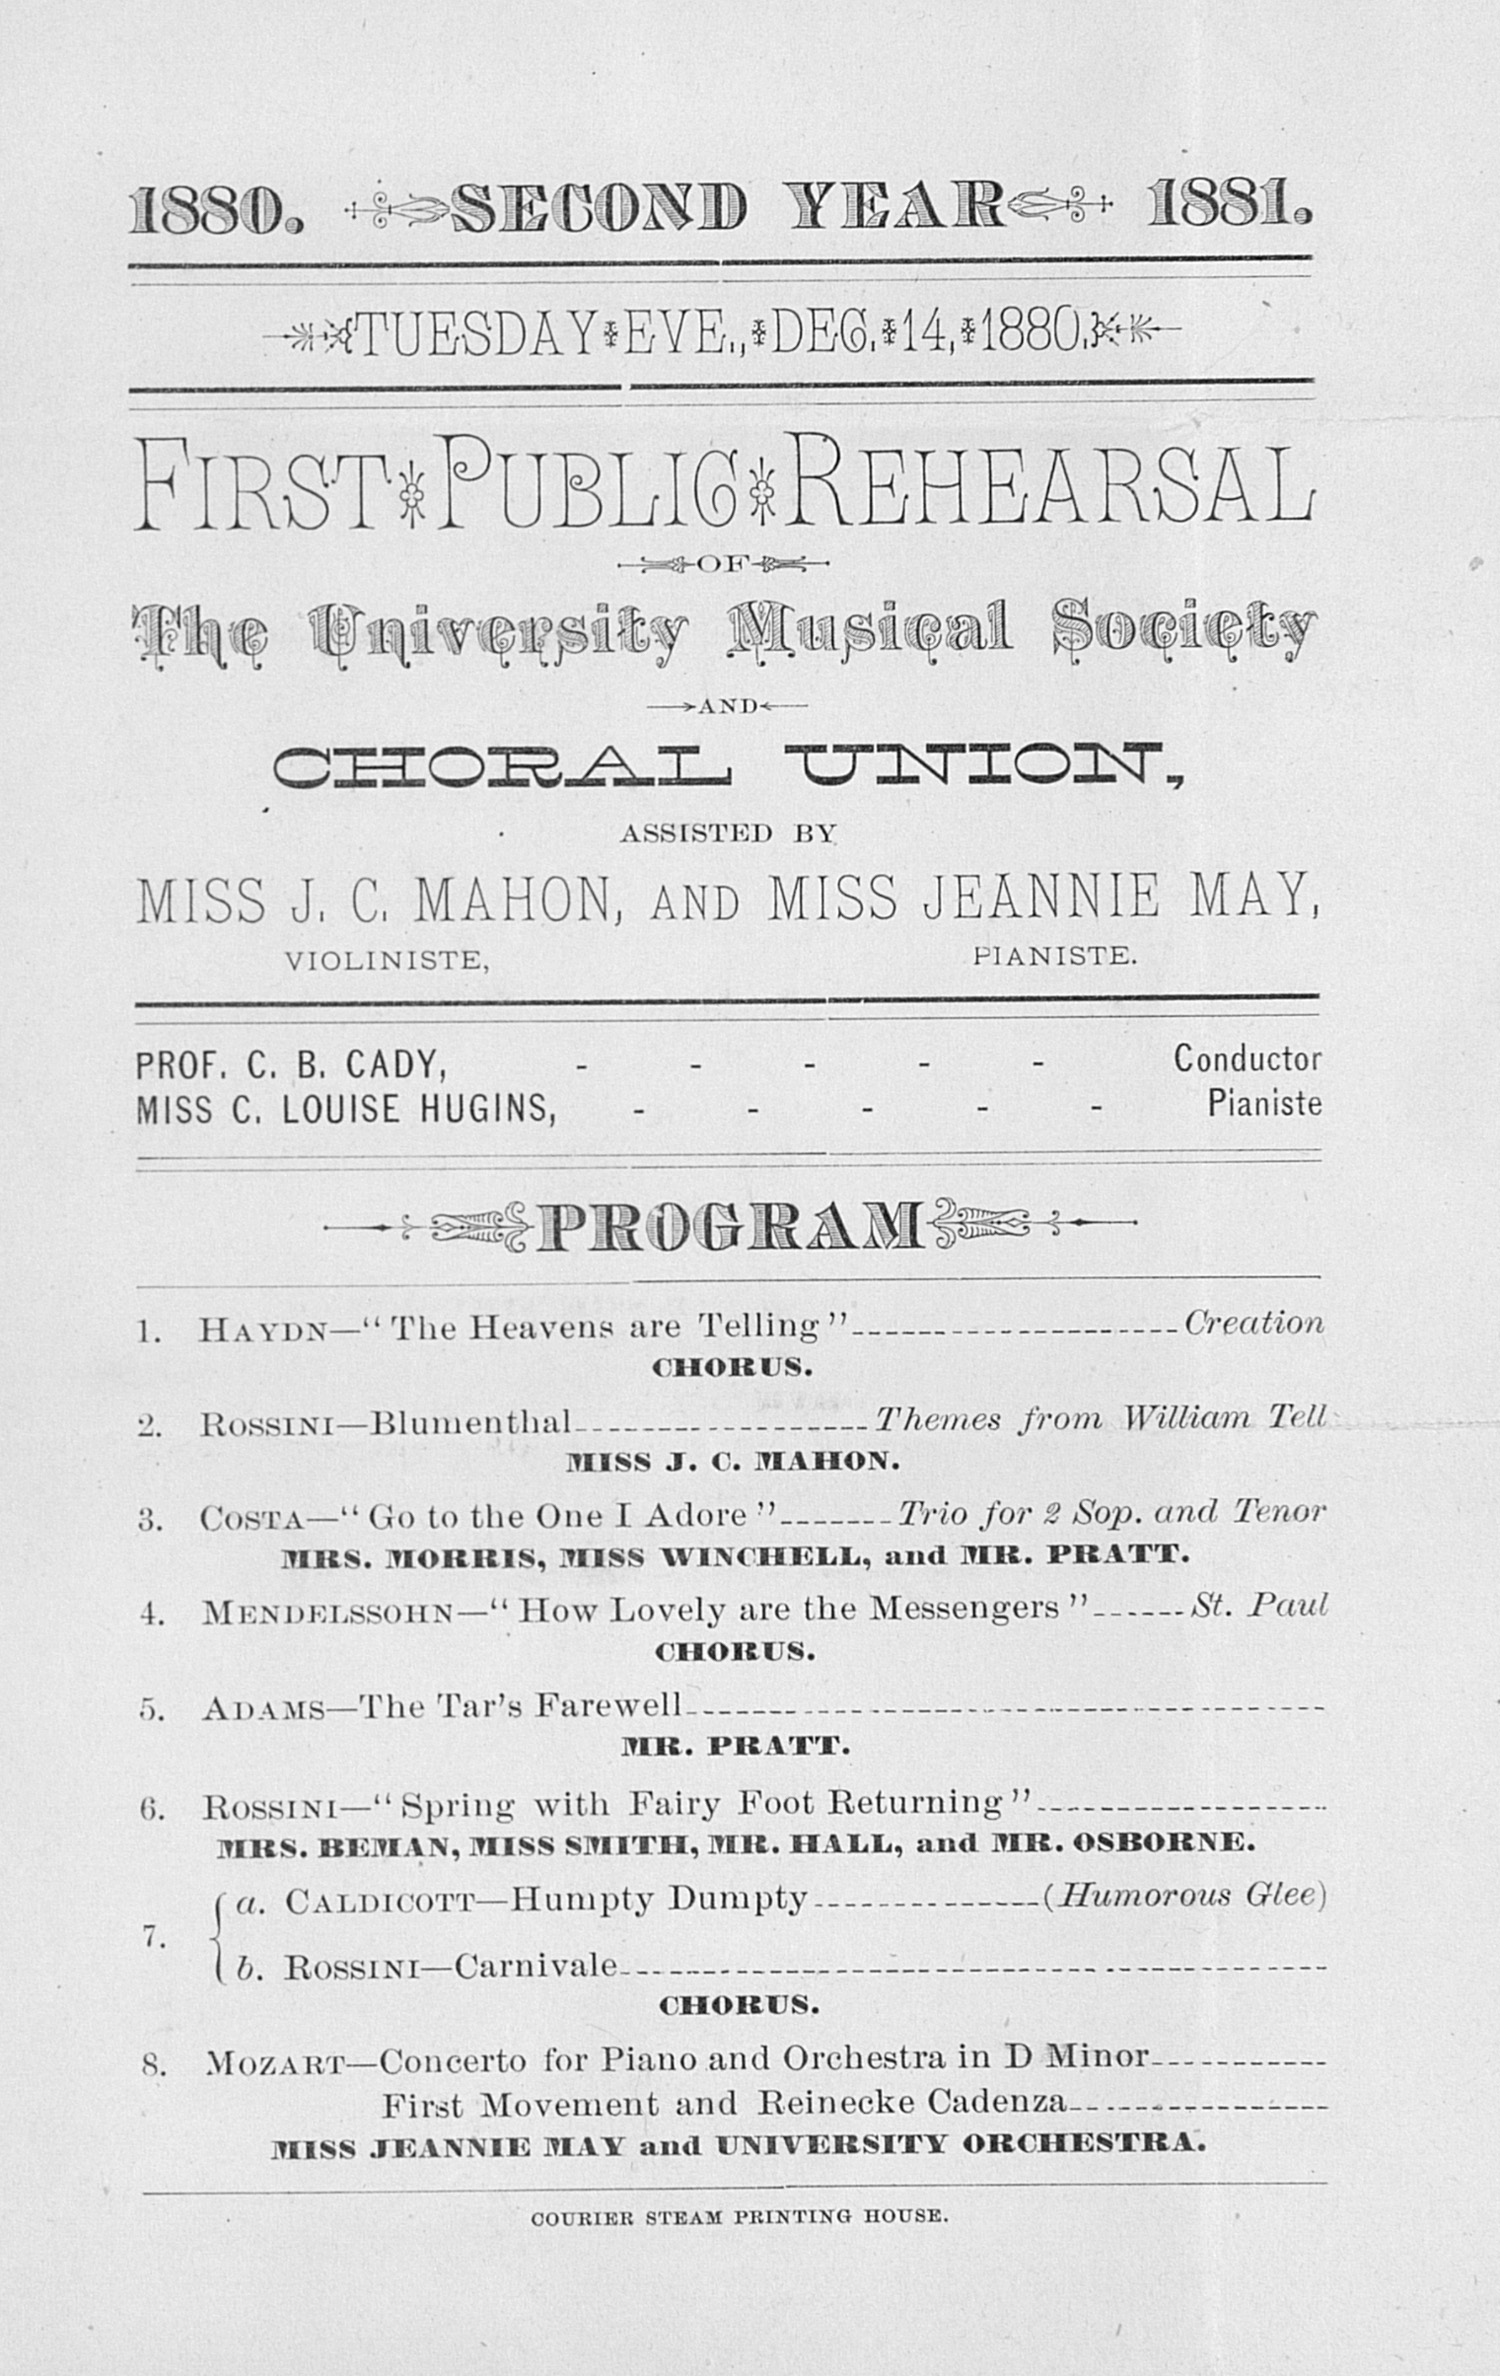 UMS Concert Program, Dec. 14,1880: Choral Union --  image